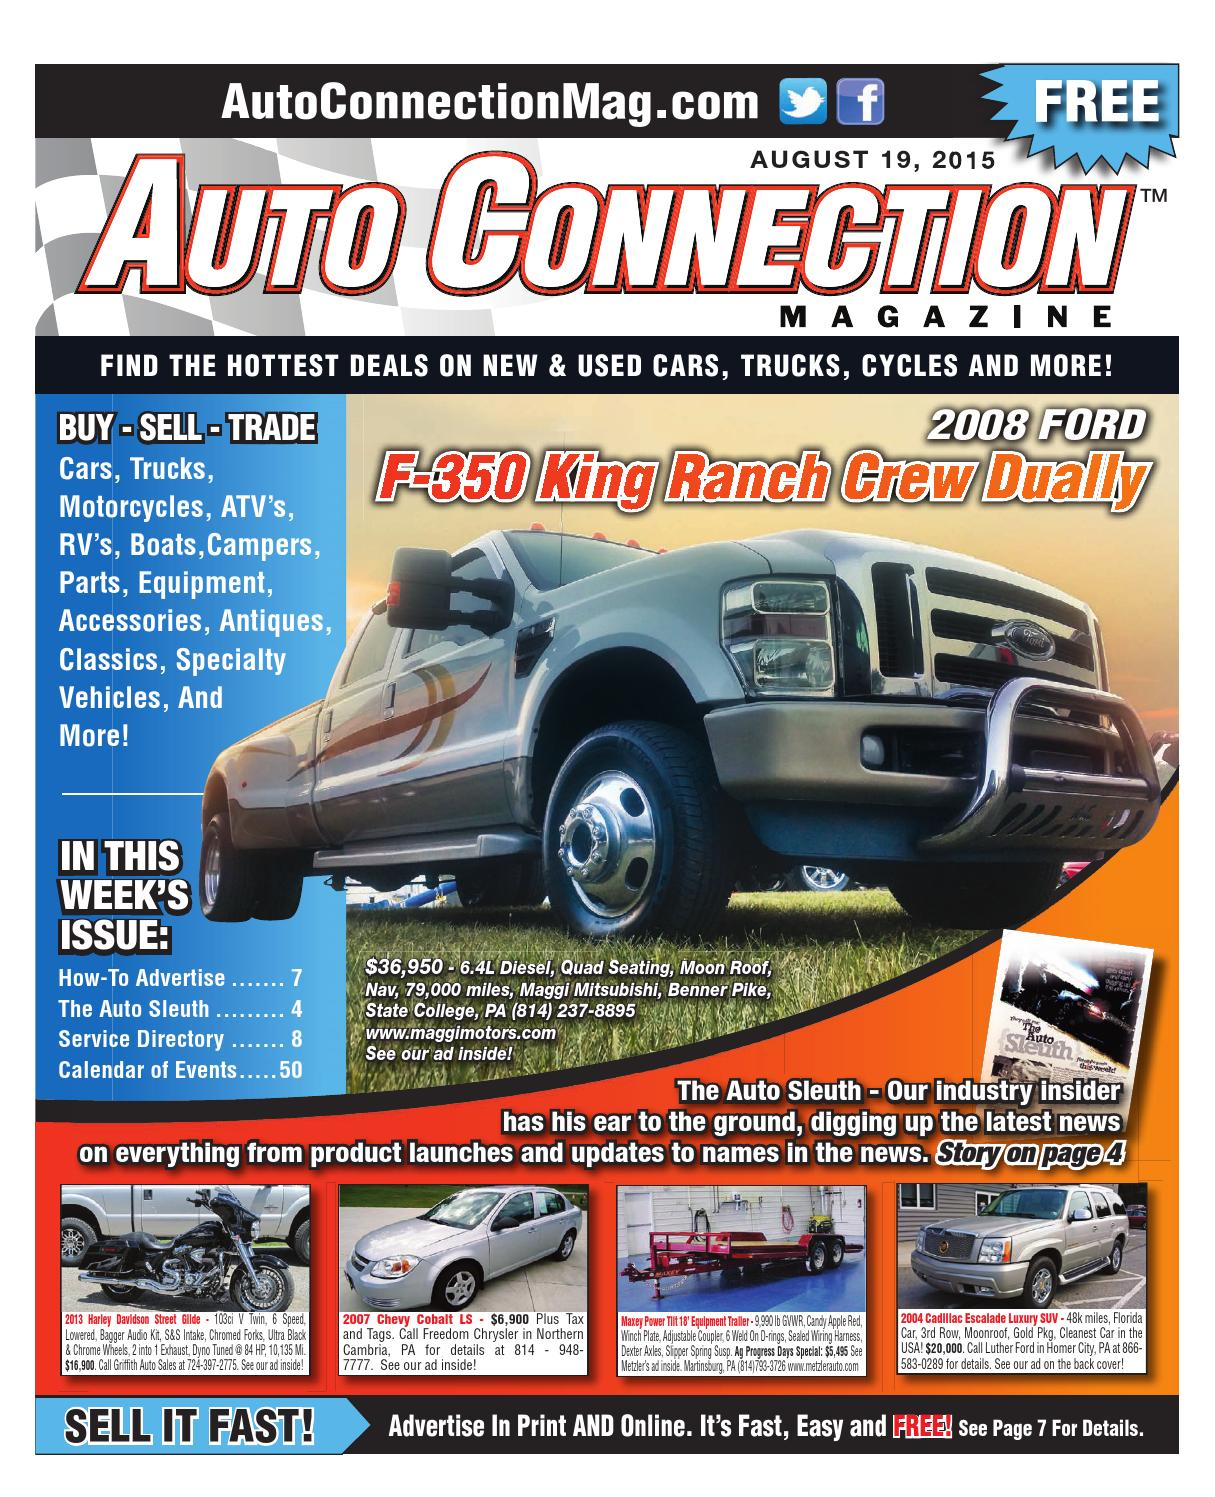 08 19 15 Auto Connection Magazine By Issuu 2007 Chevy Cobalt Wiring Harness